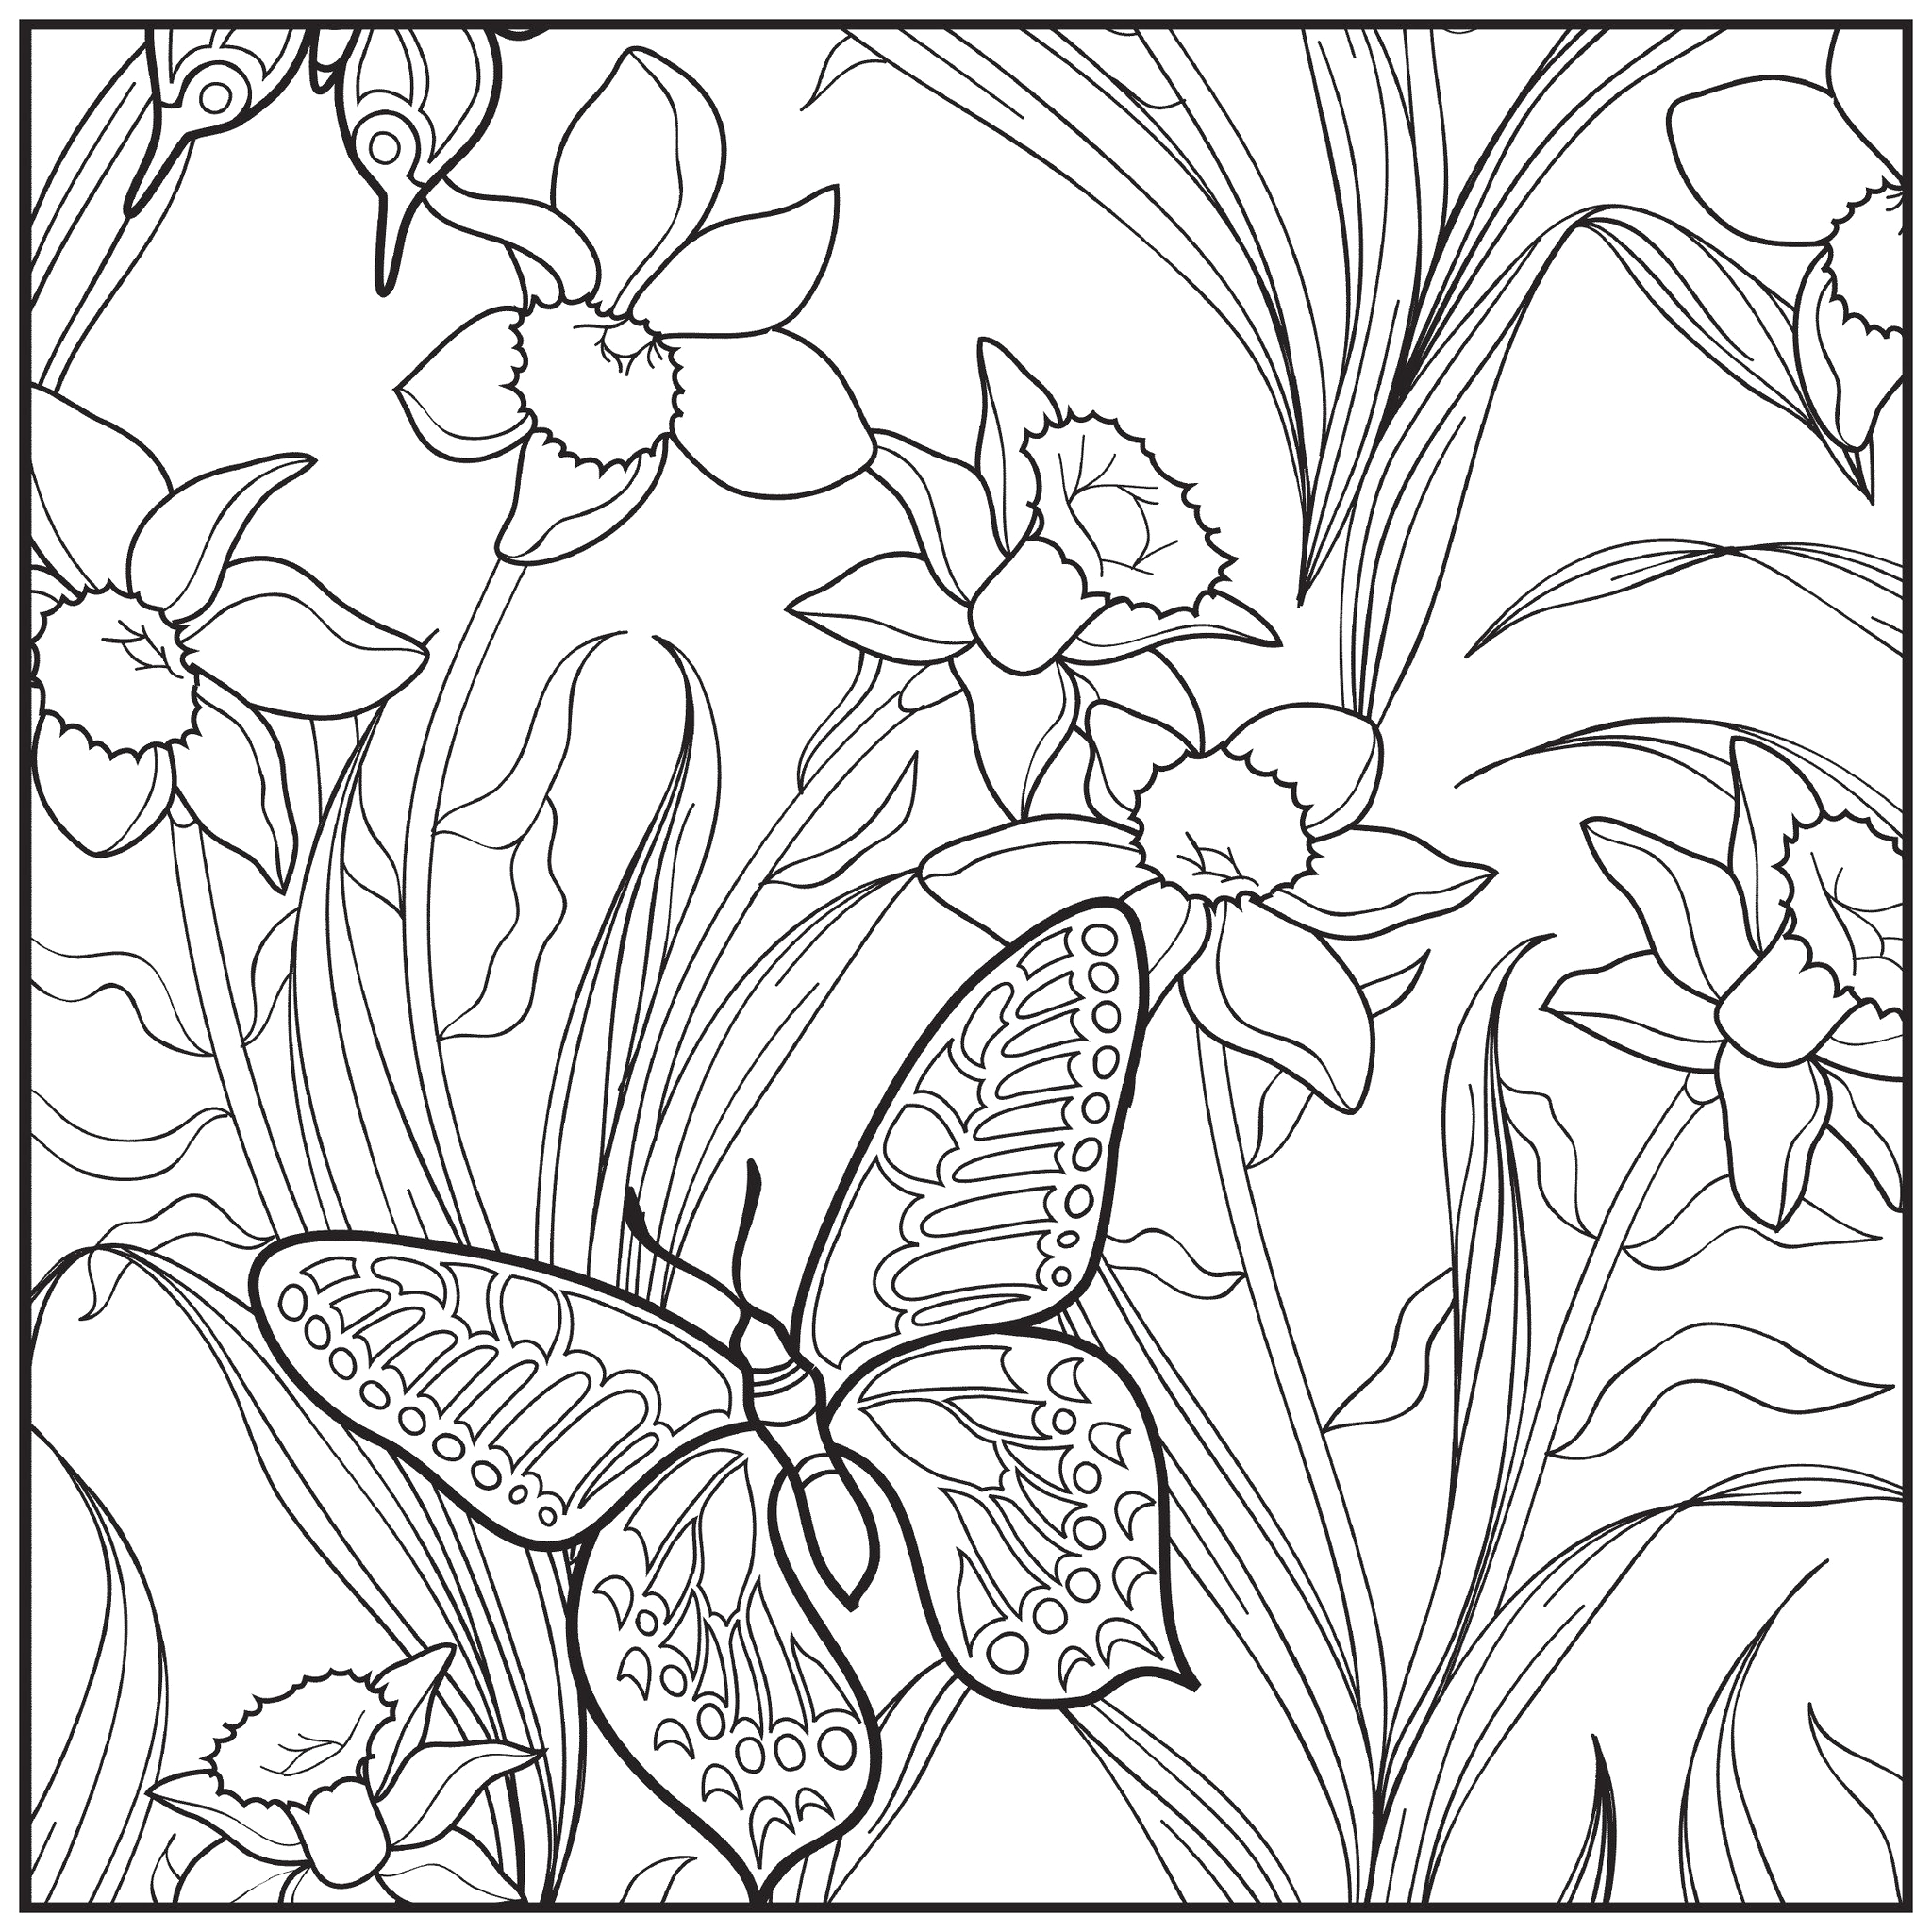 Free Printable Beach Coloring Pages for Adults Beach Sunset Coloring Pages at Getcolorings